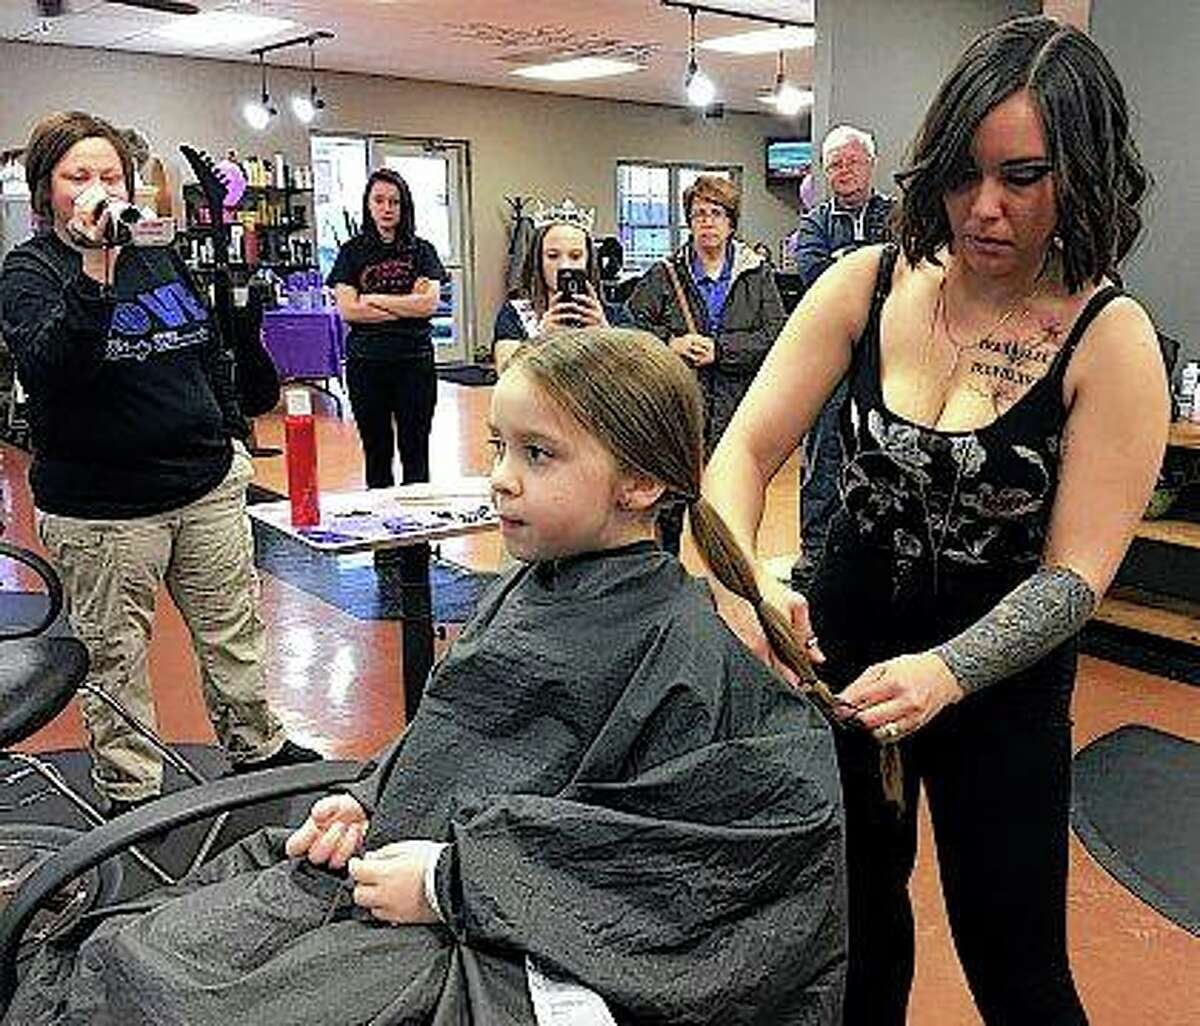 Montana Schmidt, a stylist at Kevin & Co., cuts the hair of Sophia Wright at the salon in Danville as part of Sophia's donation to Pantene's Beautiful Lengths program, which provides free wigs to cancer patients. Sophia inspired at least eight other children and adults to make a hair donation.